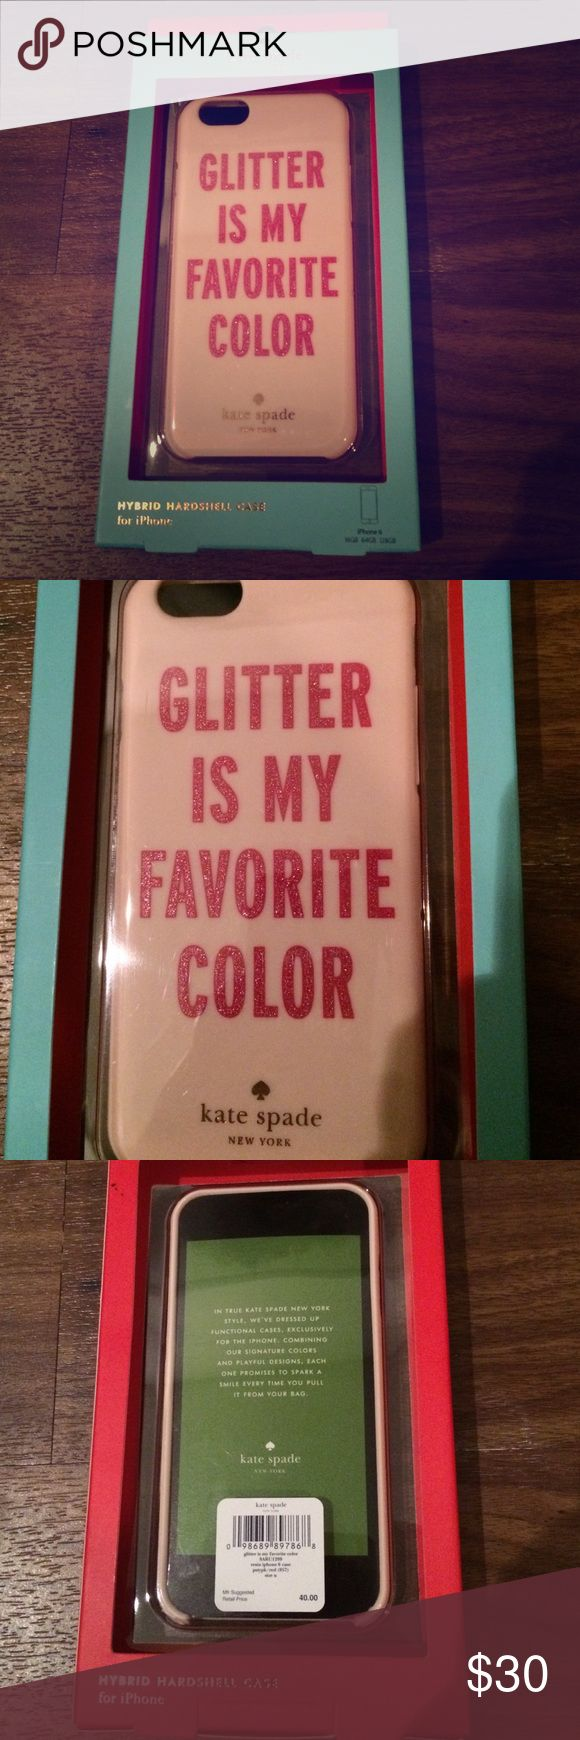 "NWT Kate Spade IPhone 6/6s Hybrid Case NWT Kate Spade IPhone 6/6s Hybrid Case. ""Glitter is my favorite color"" dark pink glitter writing. Rubber bumper and hard shell back. kate spade Accessories Phone Cases"